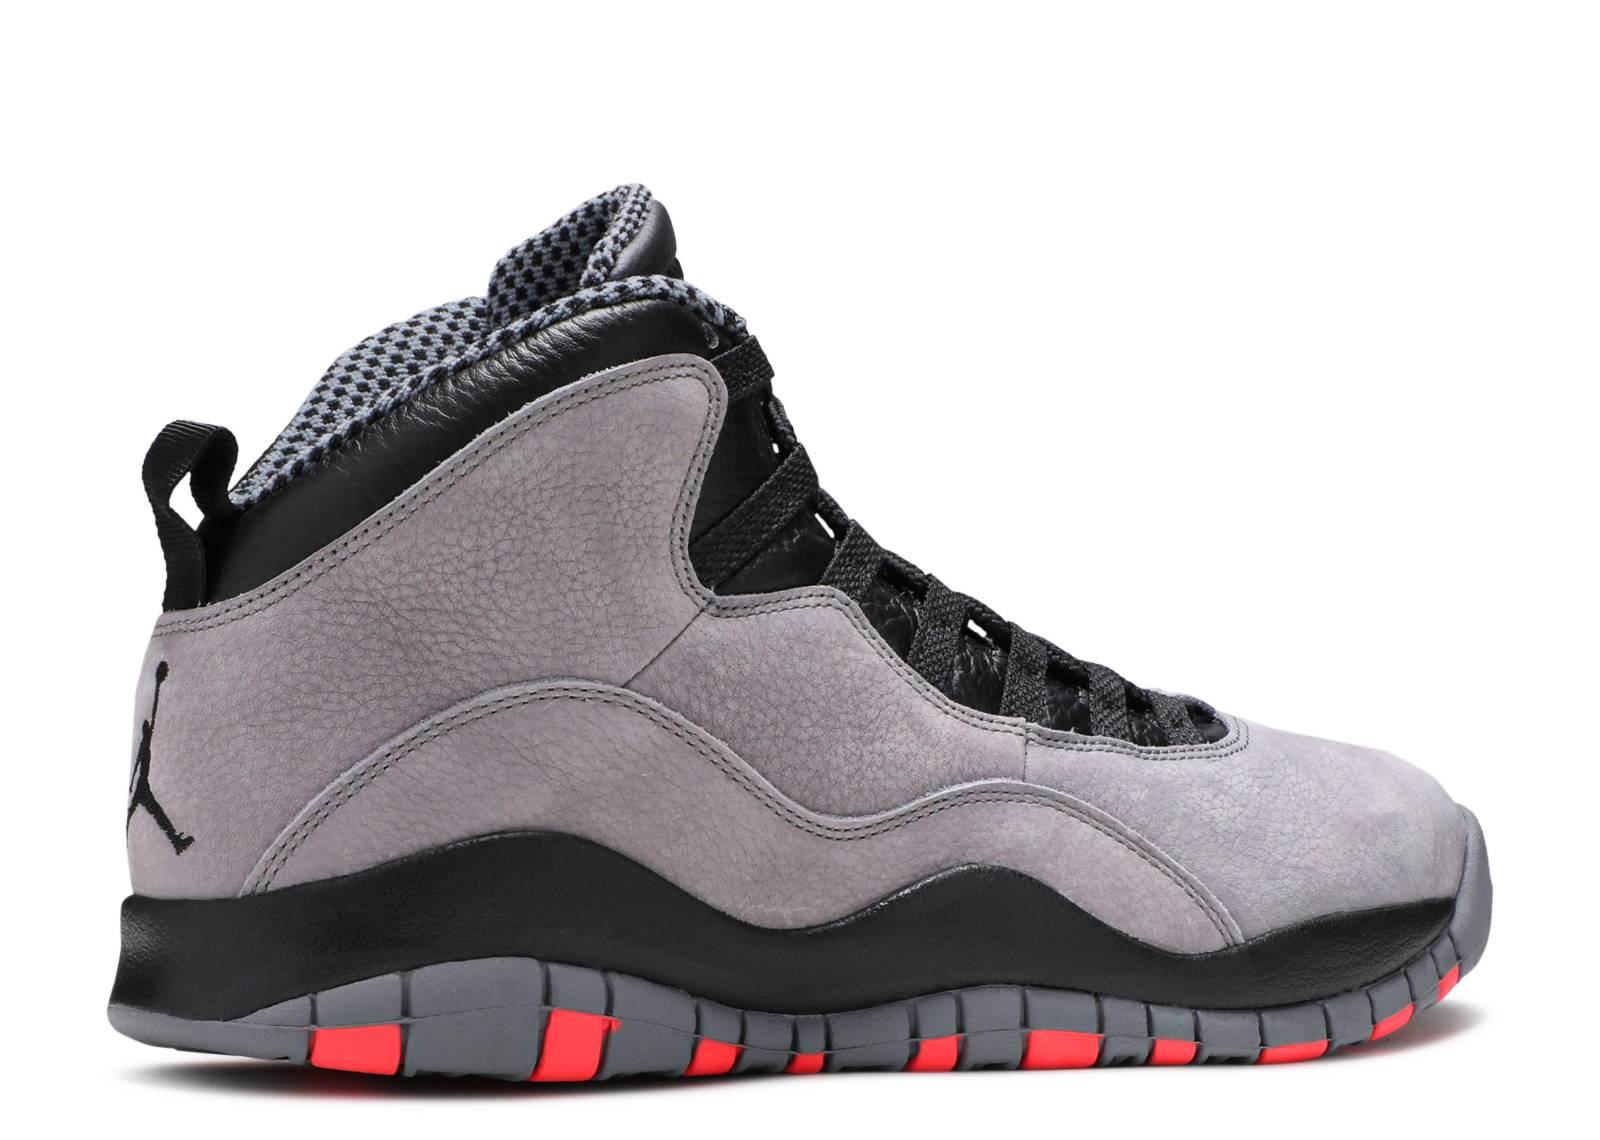 air jordan retro 10 quotcool greyquot air jordan 310805 023